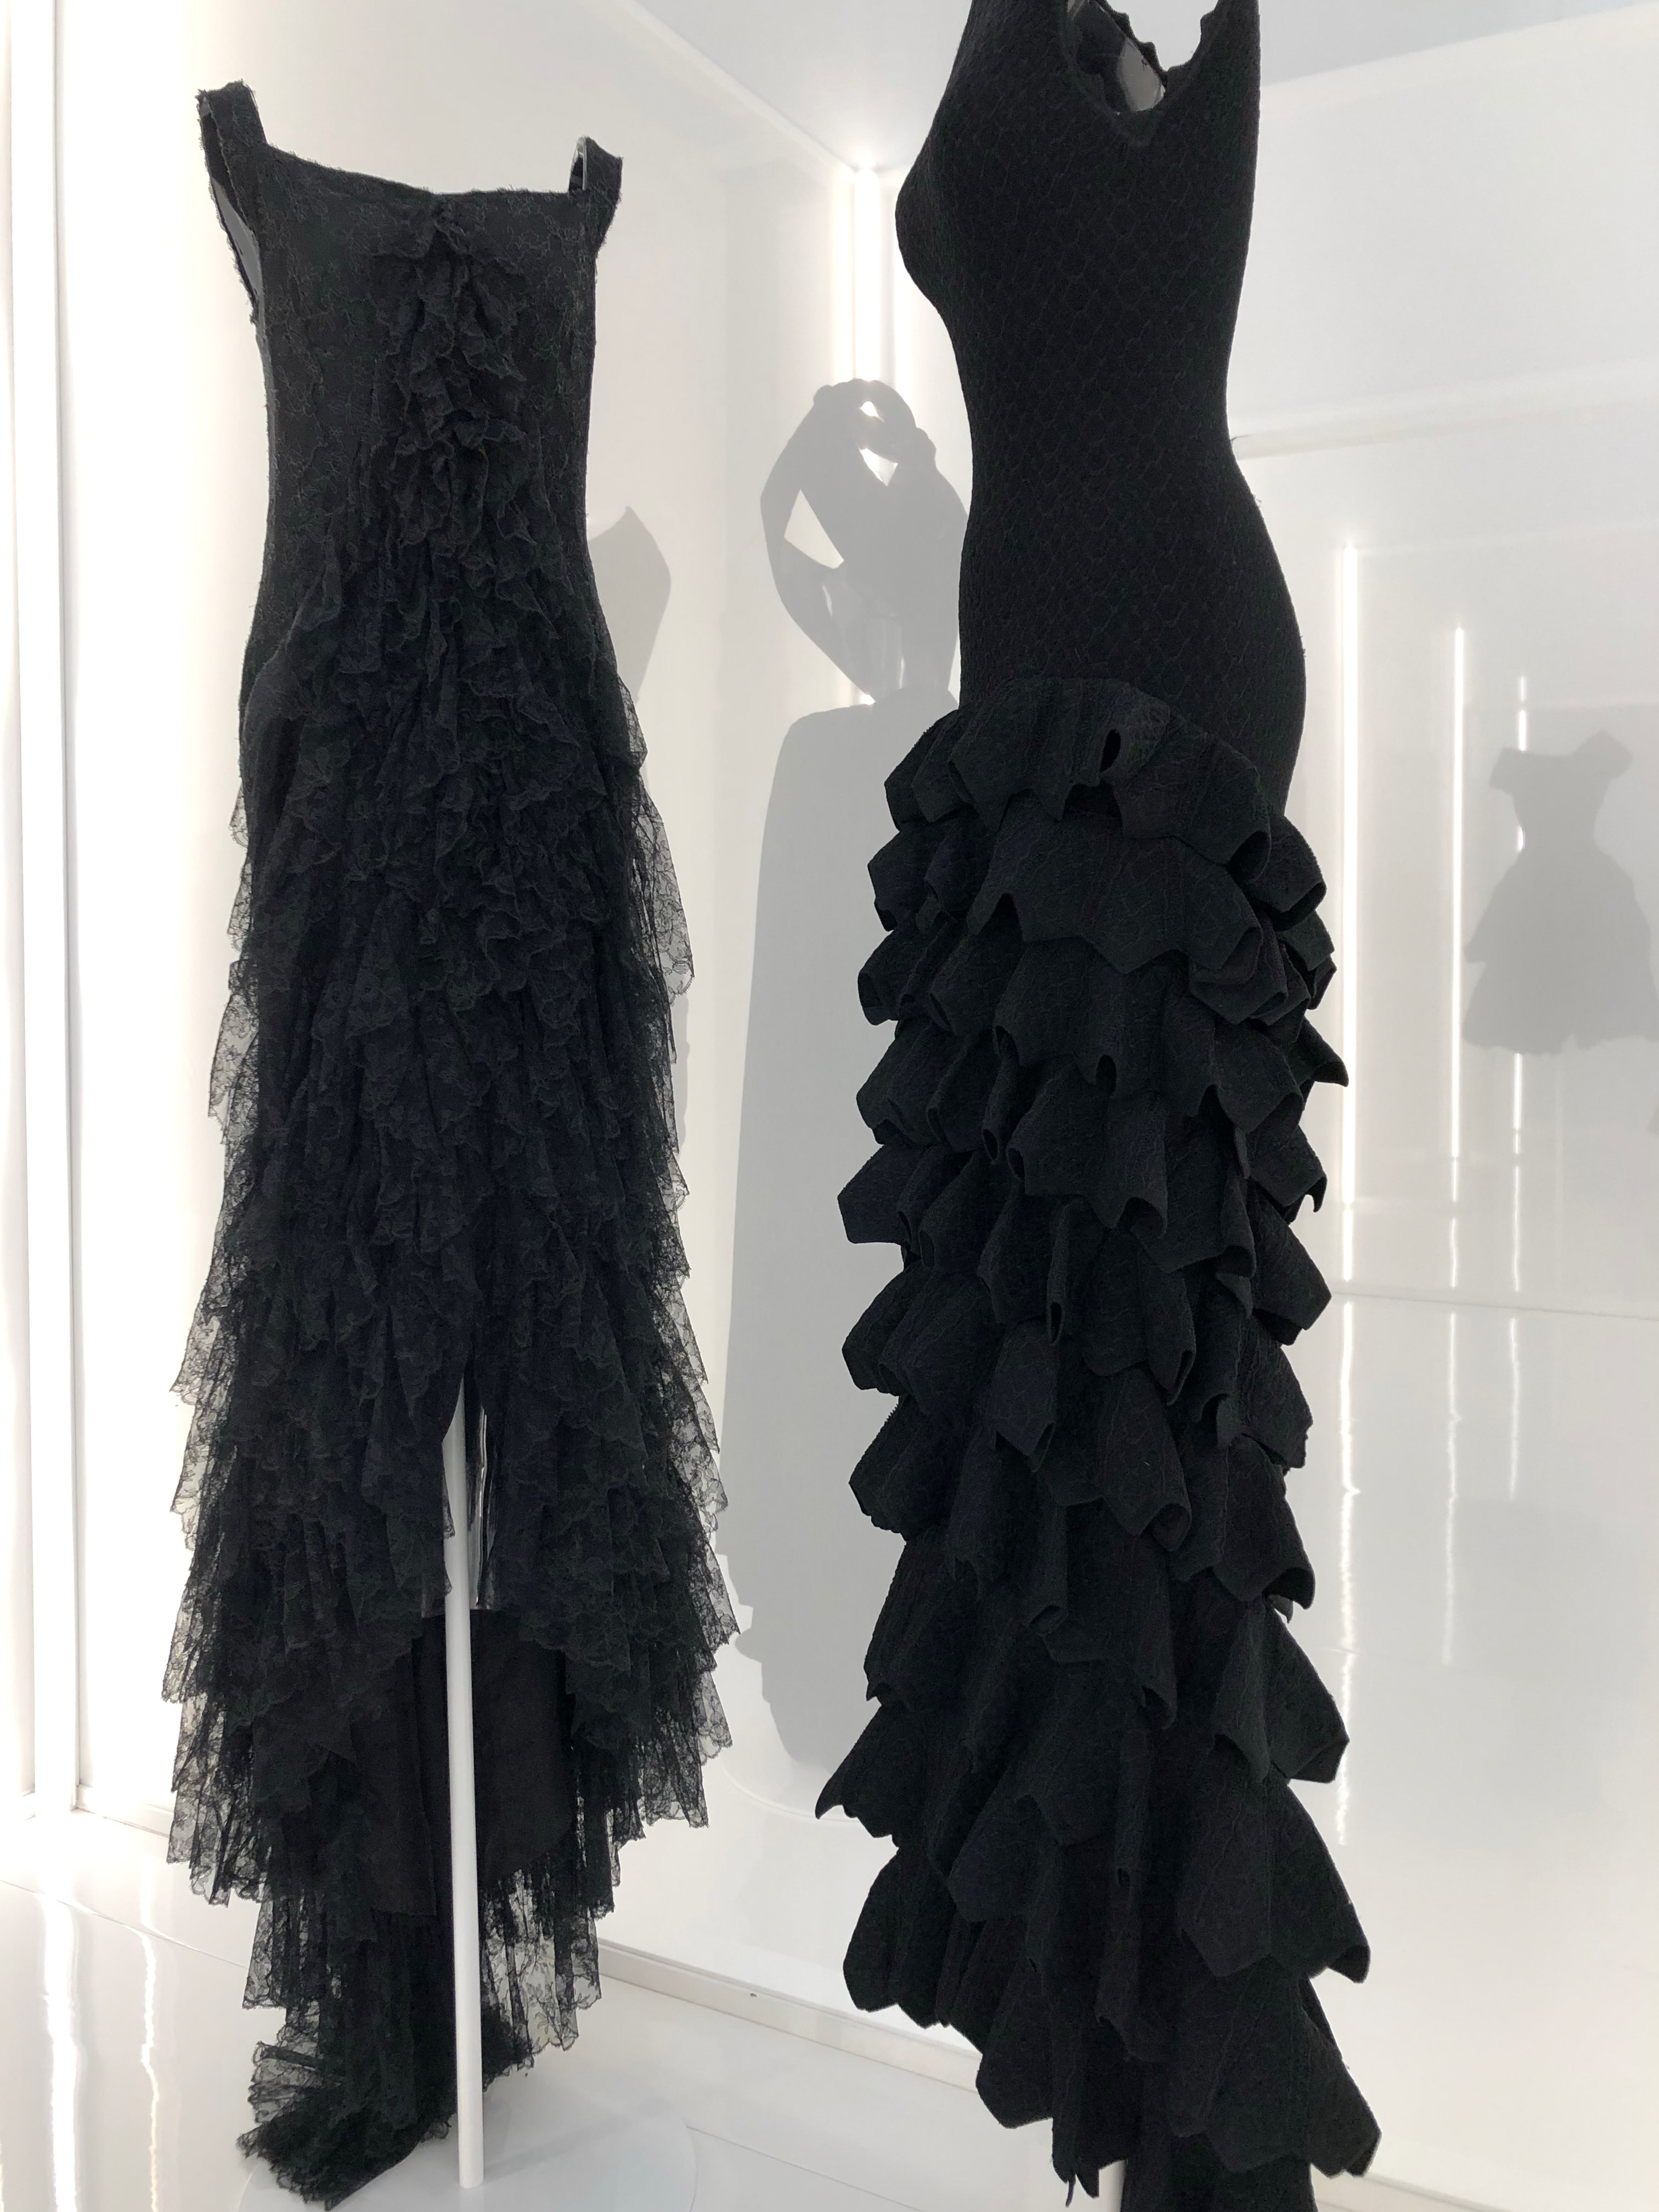 azzedinealaia-5